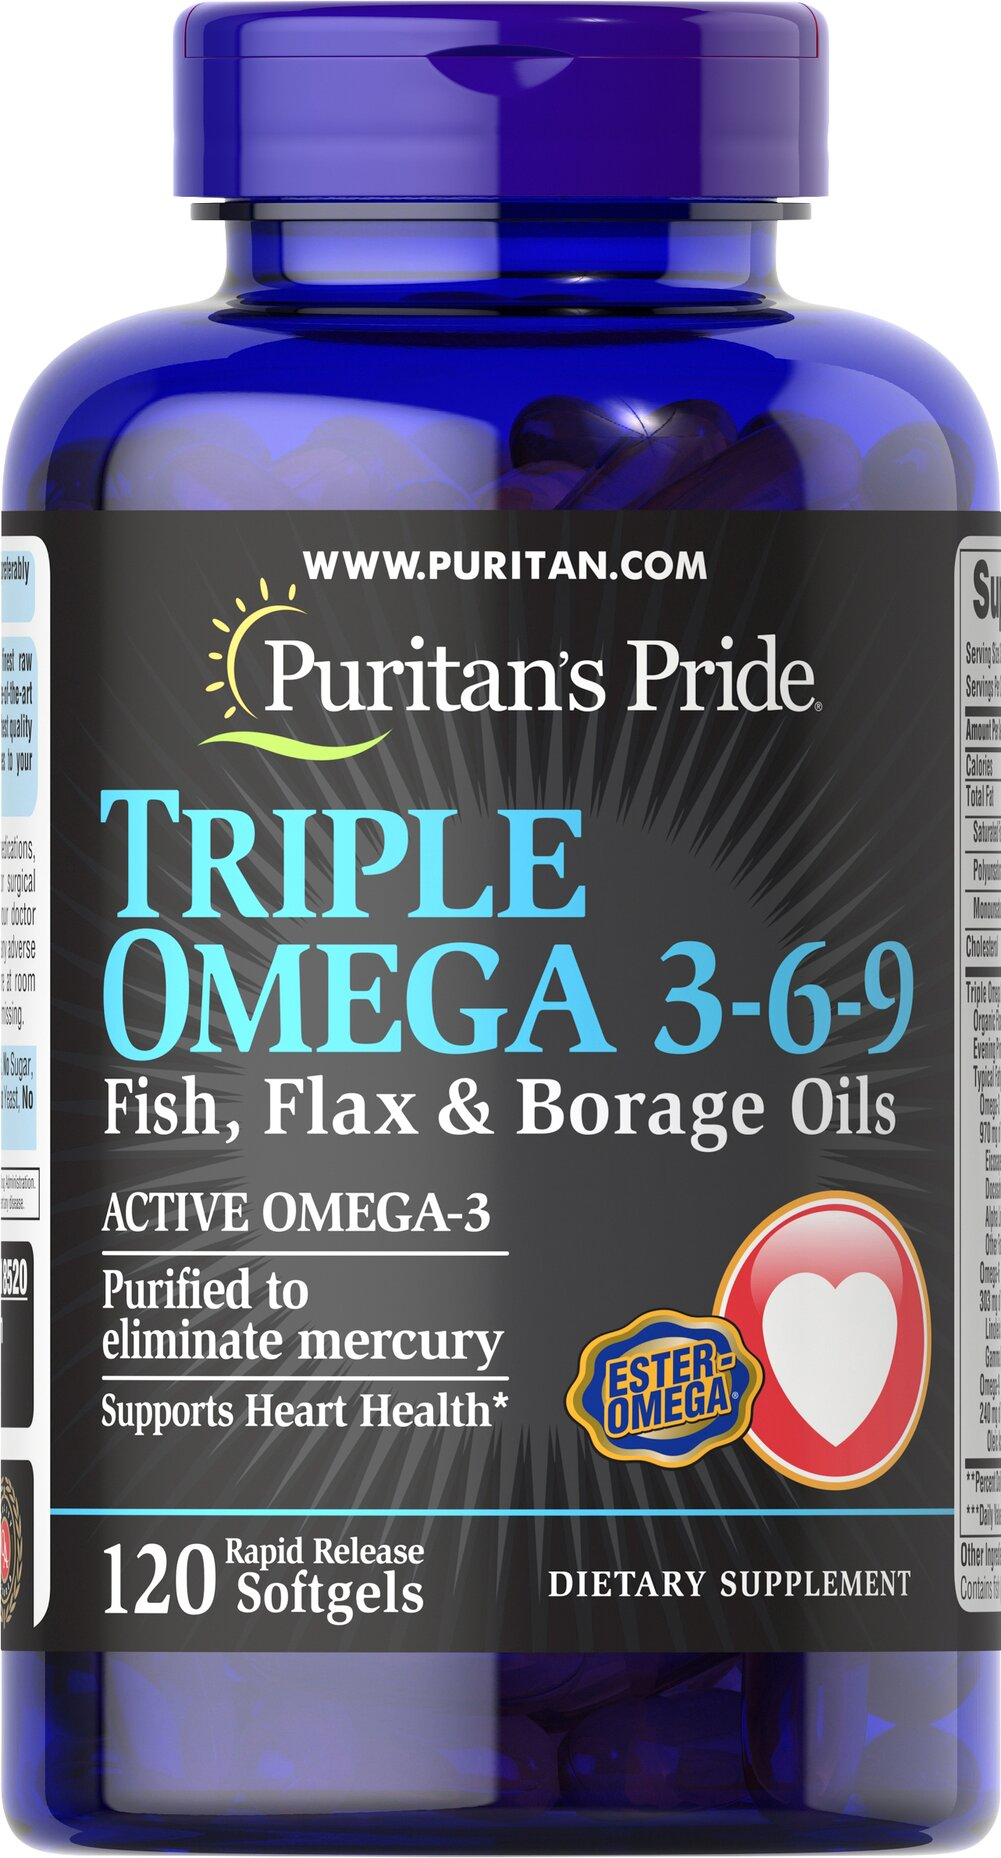 "Triple Omega 3-6-9 Fish, Flax & Borage Oils <p><strong>Purified to Eliminate Mercury</strong></p><p>Contains Omega-3, Omega-6 and Omega-9 – the ""good"" fats important for cellular, heart and metabolic health.** </p>TRIPLE OMEGA 3-6-9 contains <em>a proprietary blend of essential oils, including Flaxseed Oil, Fish Oil, Evening Primrose Oil and Borage Oil, and is a good source of Vitamin E.</em><p></p> 120 Softgels  $16.99"